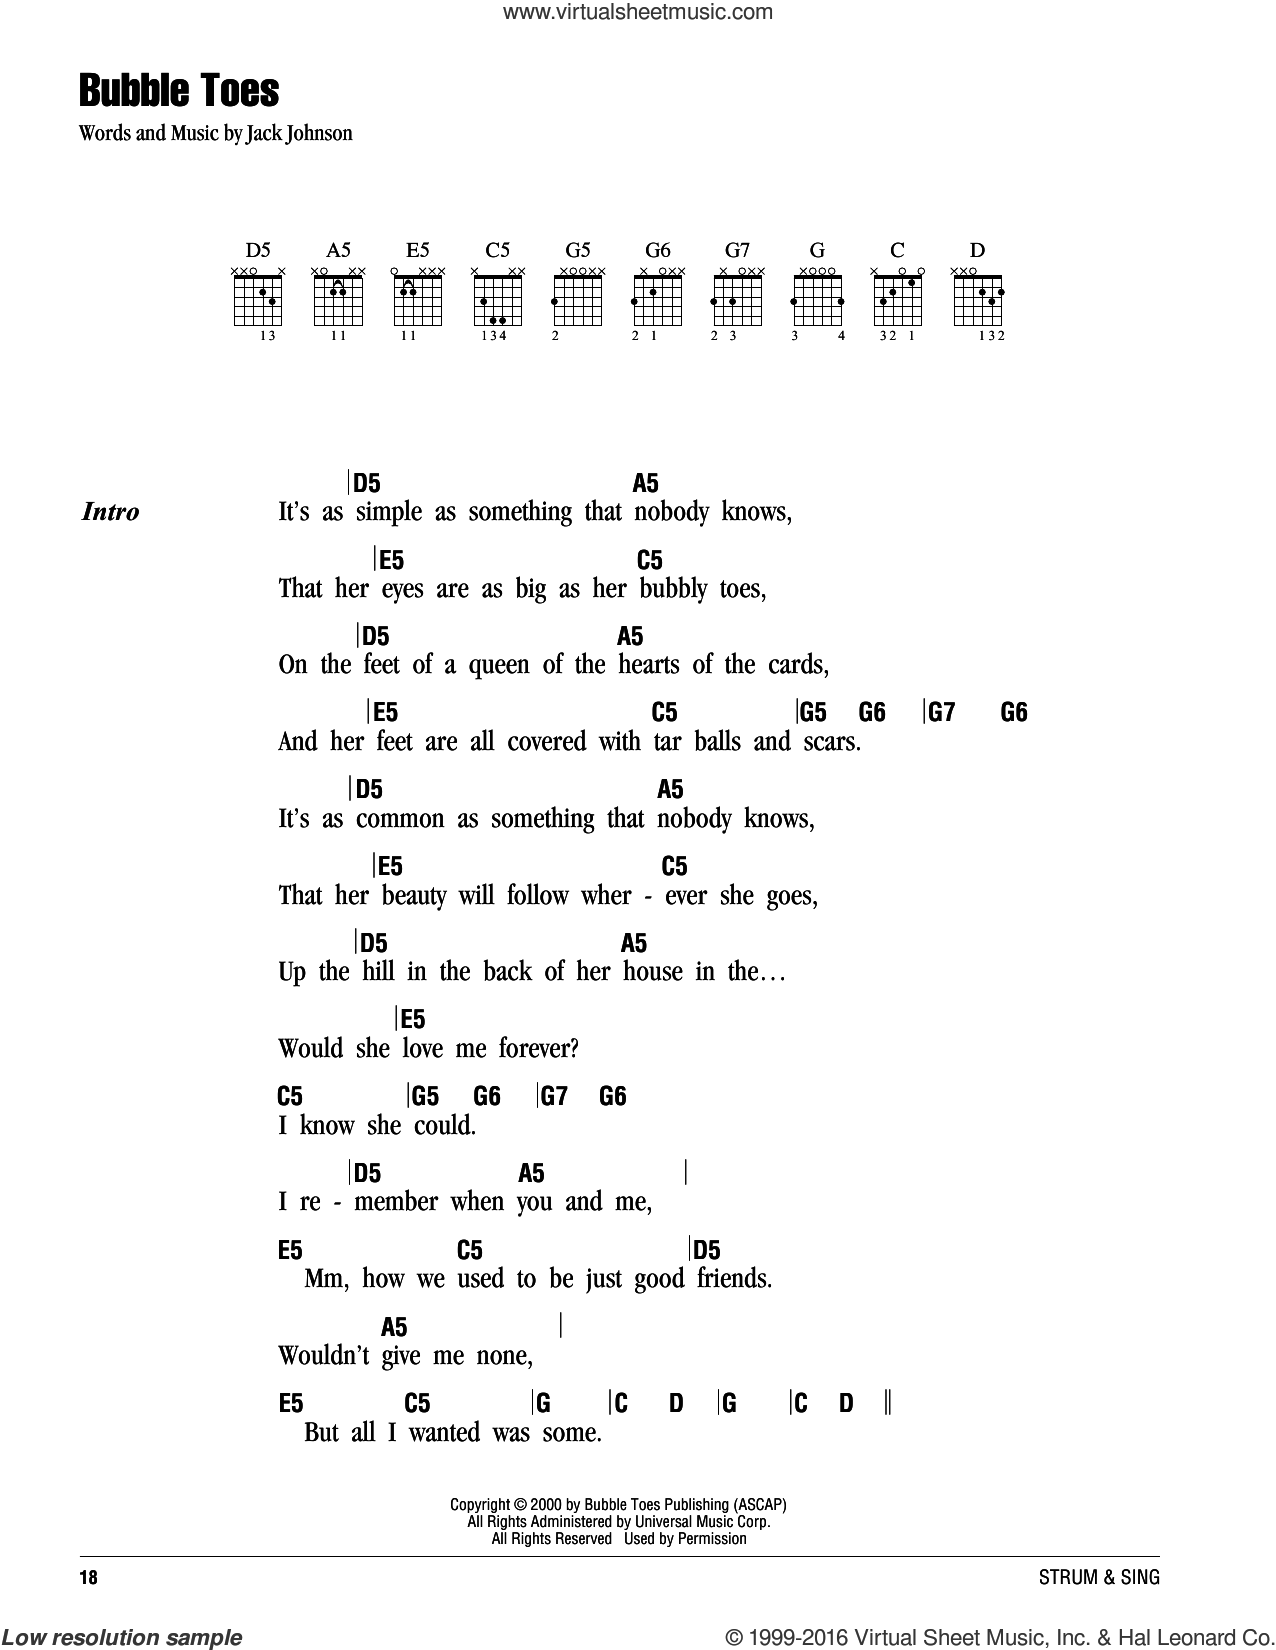 Bubble Toes sheet music for guitar (chords) by Jack Johnson. Score Image Preview.